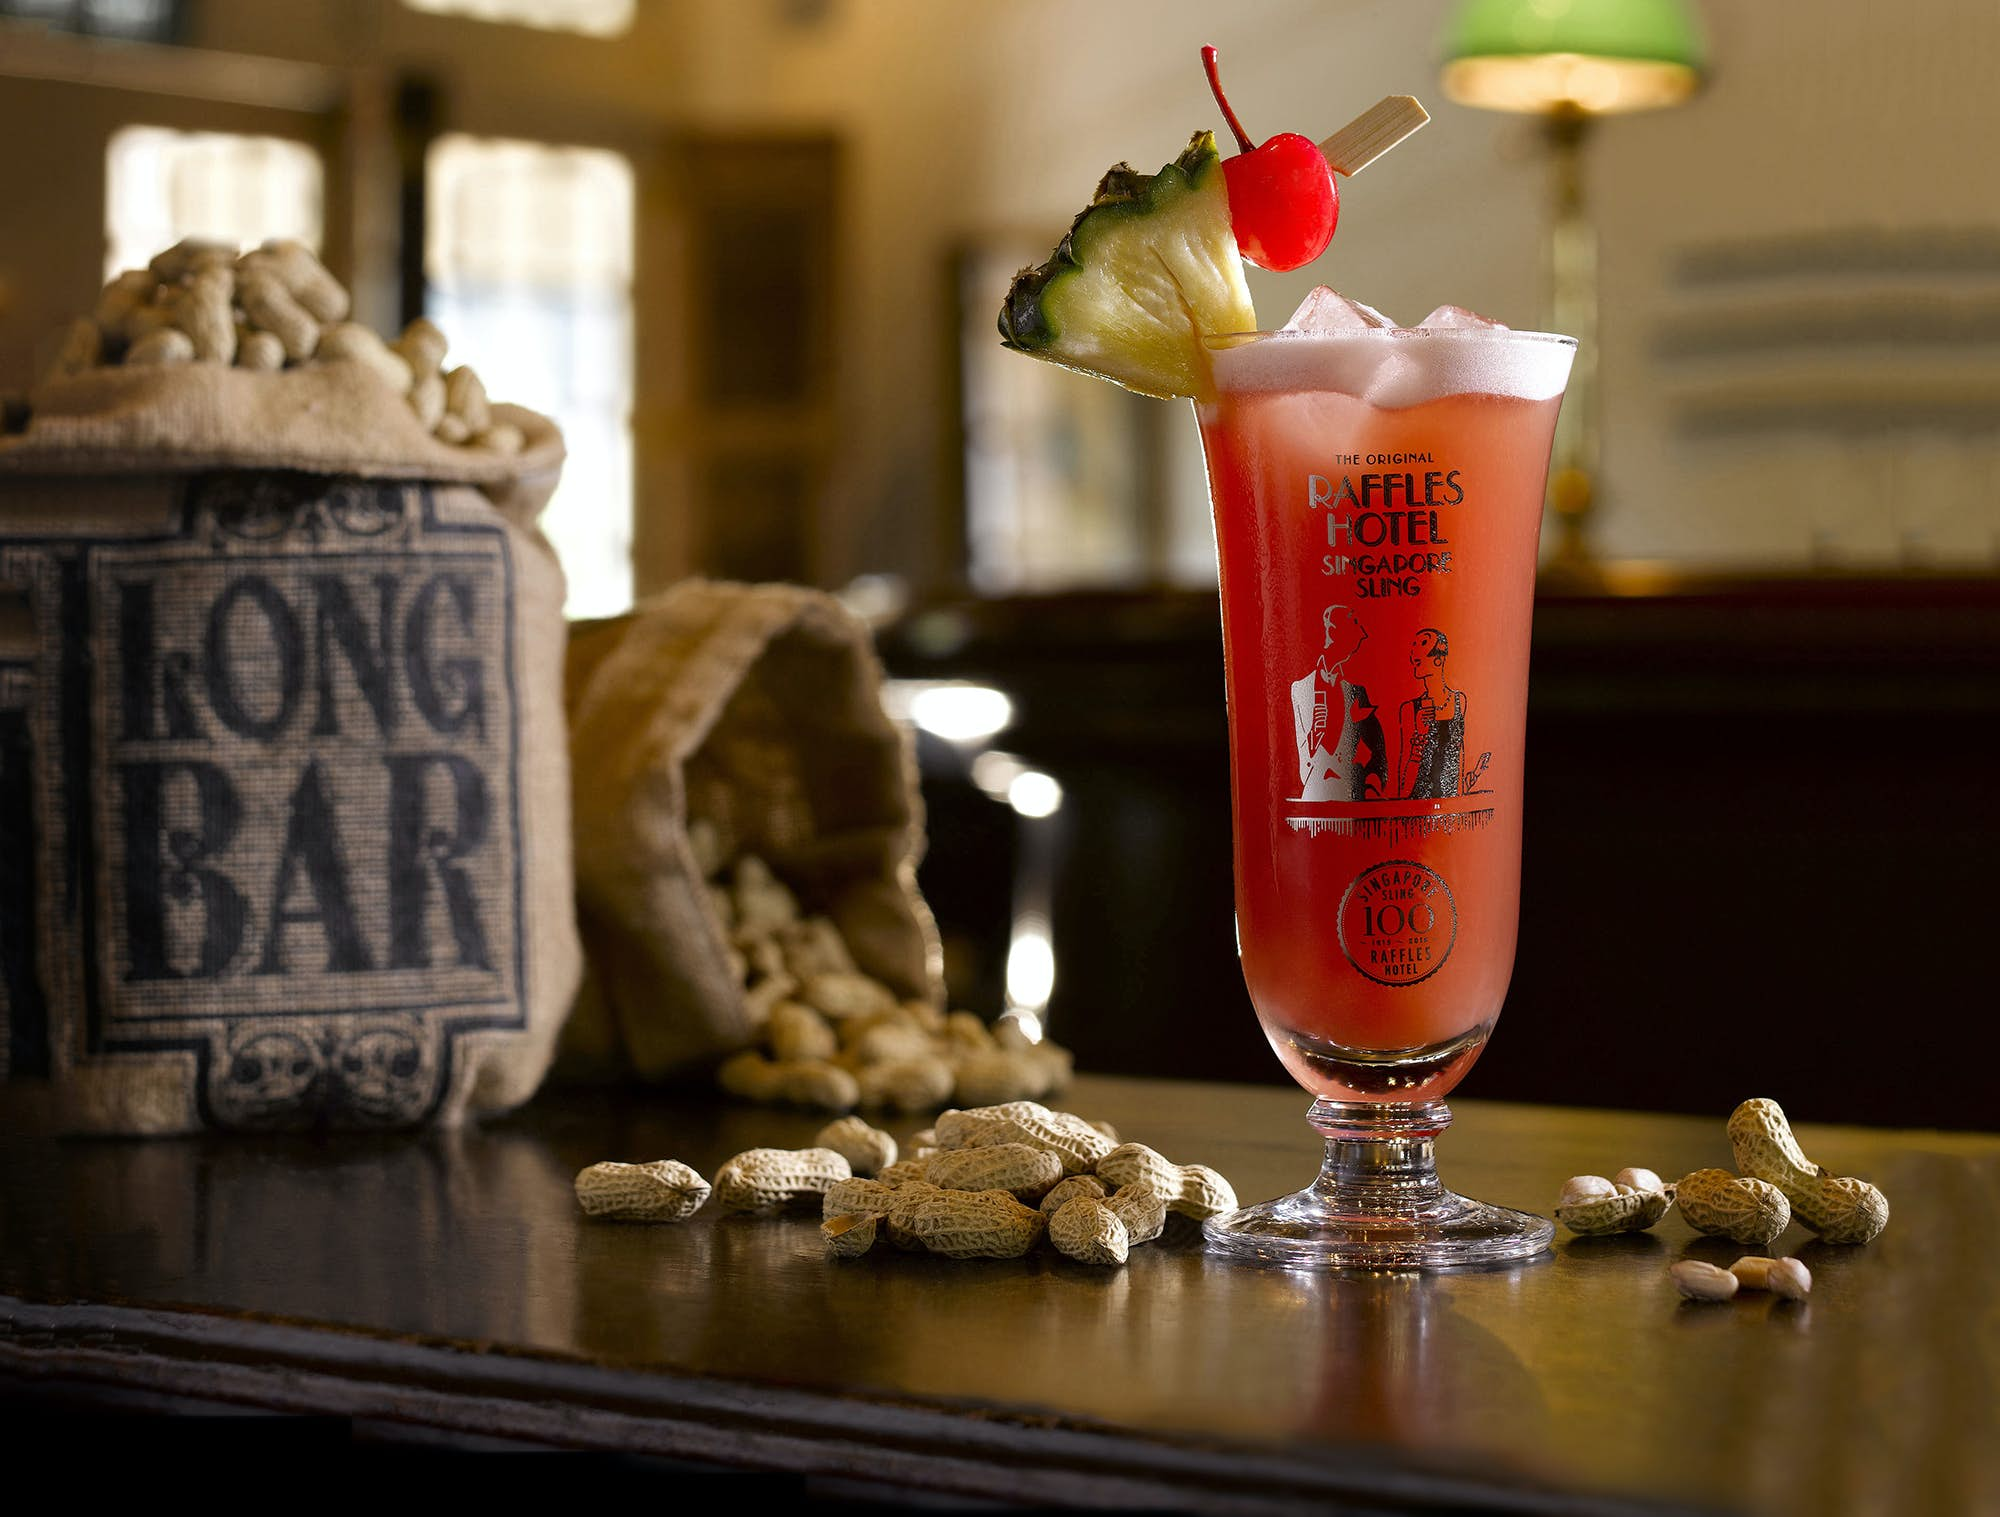 Sip An Iconic Singapore Sling Where It All Started Lonely Planet